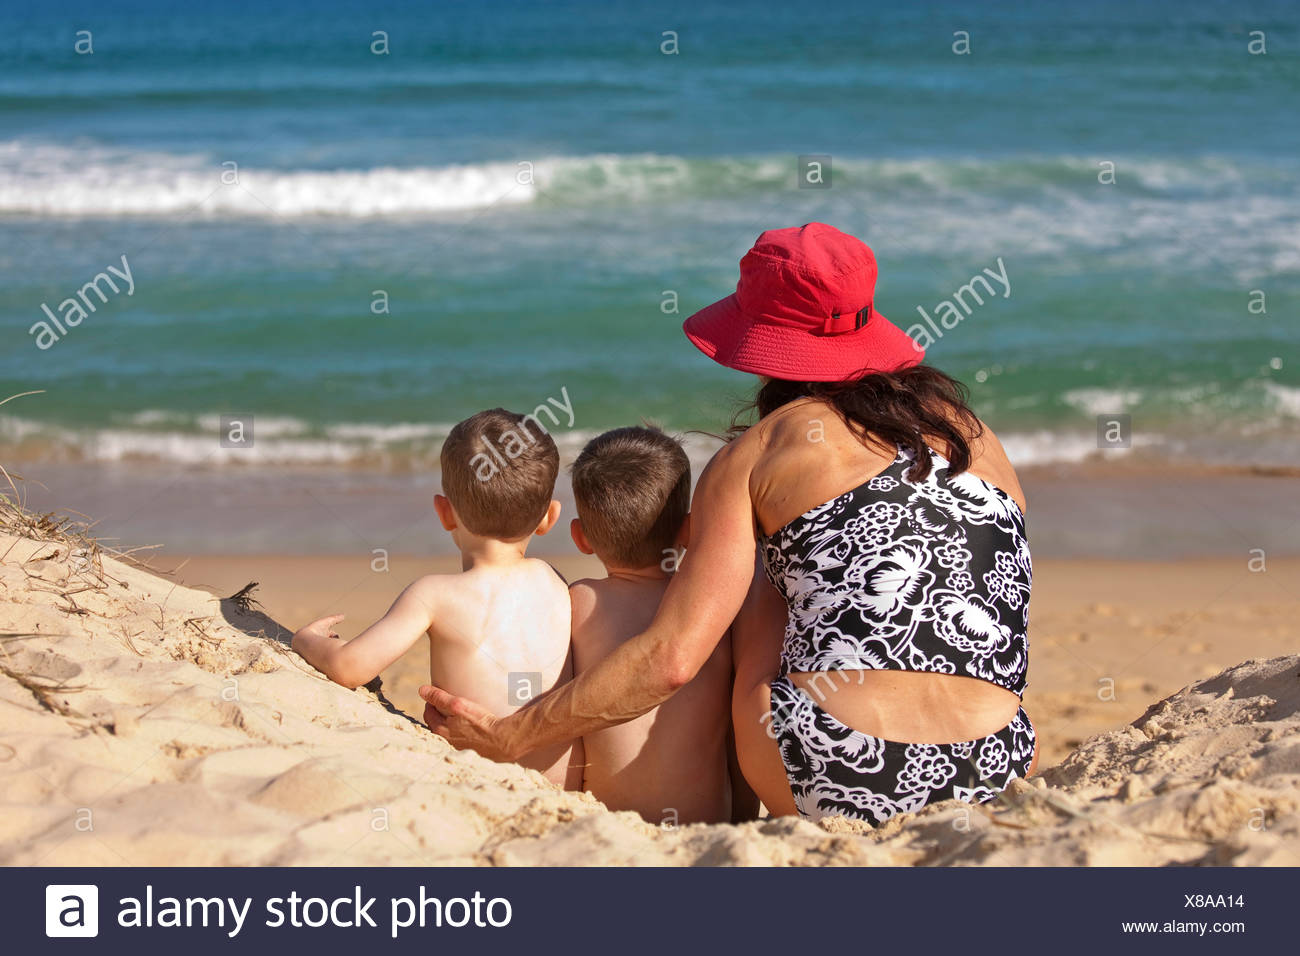 A woman and two children sitting on the sand at Sunshine Beach, Queensland, Australia. - Stock Image